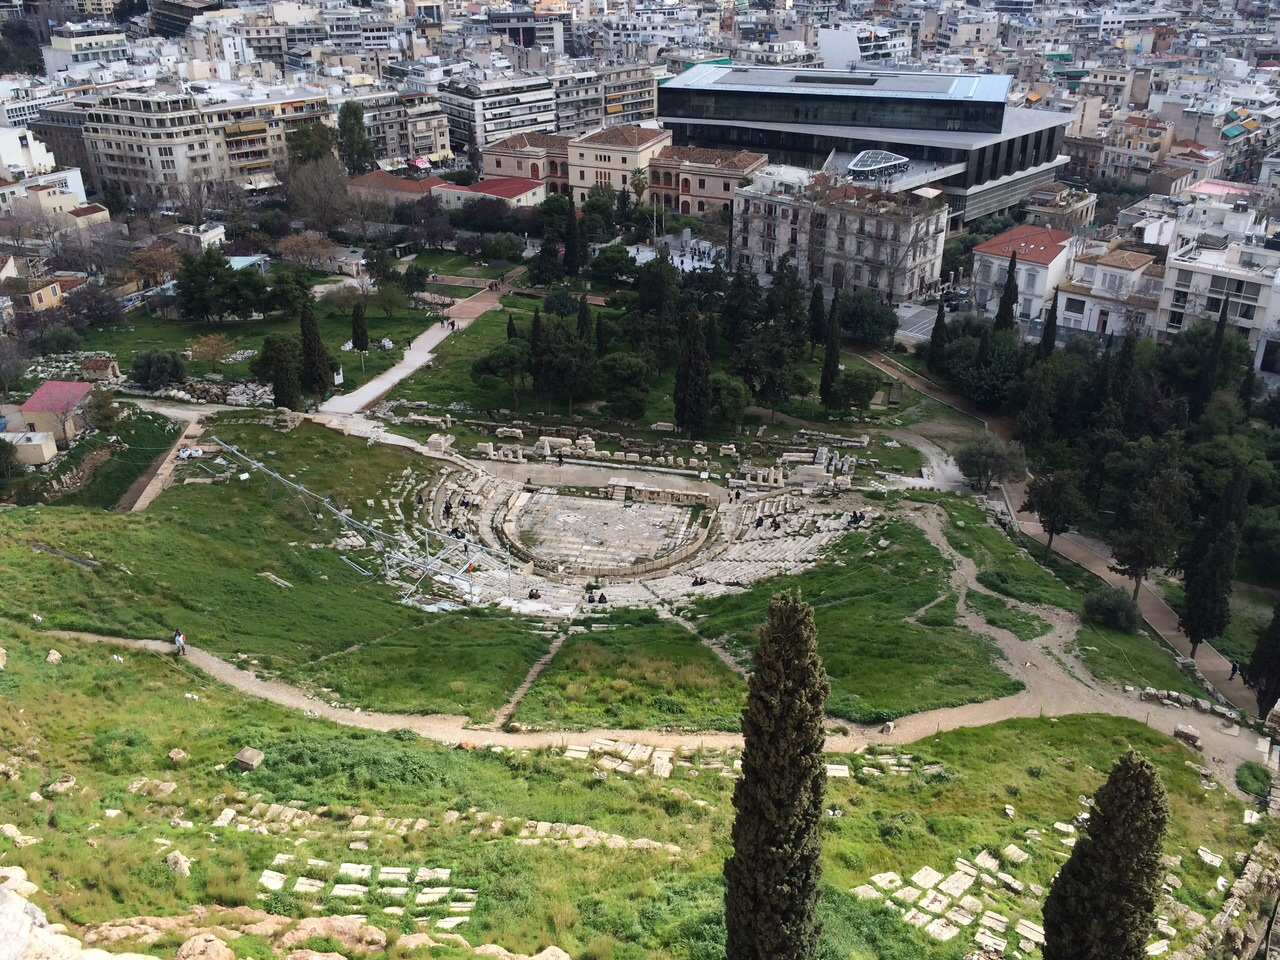 The ruins of the Theatre of Dionysos